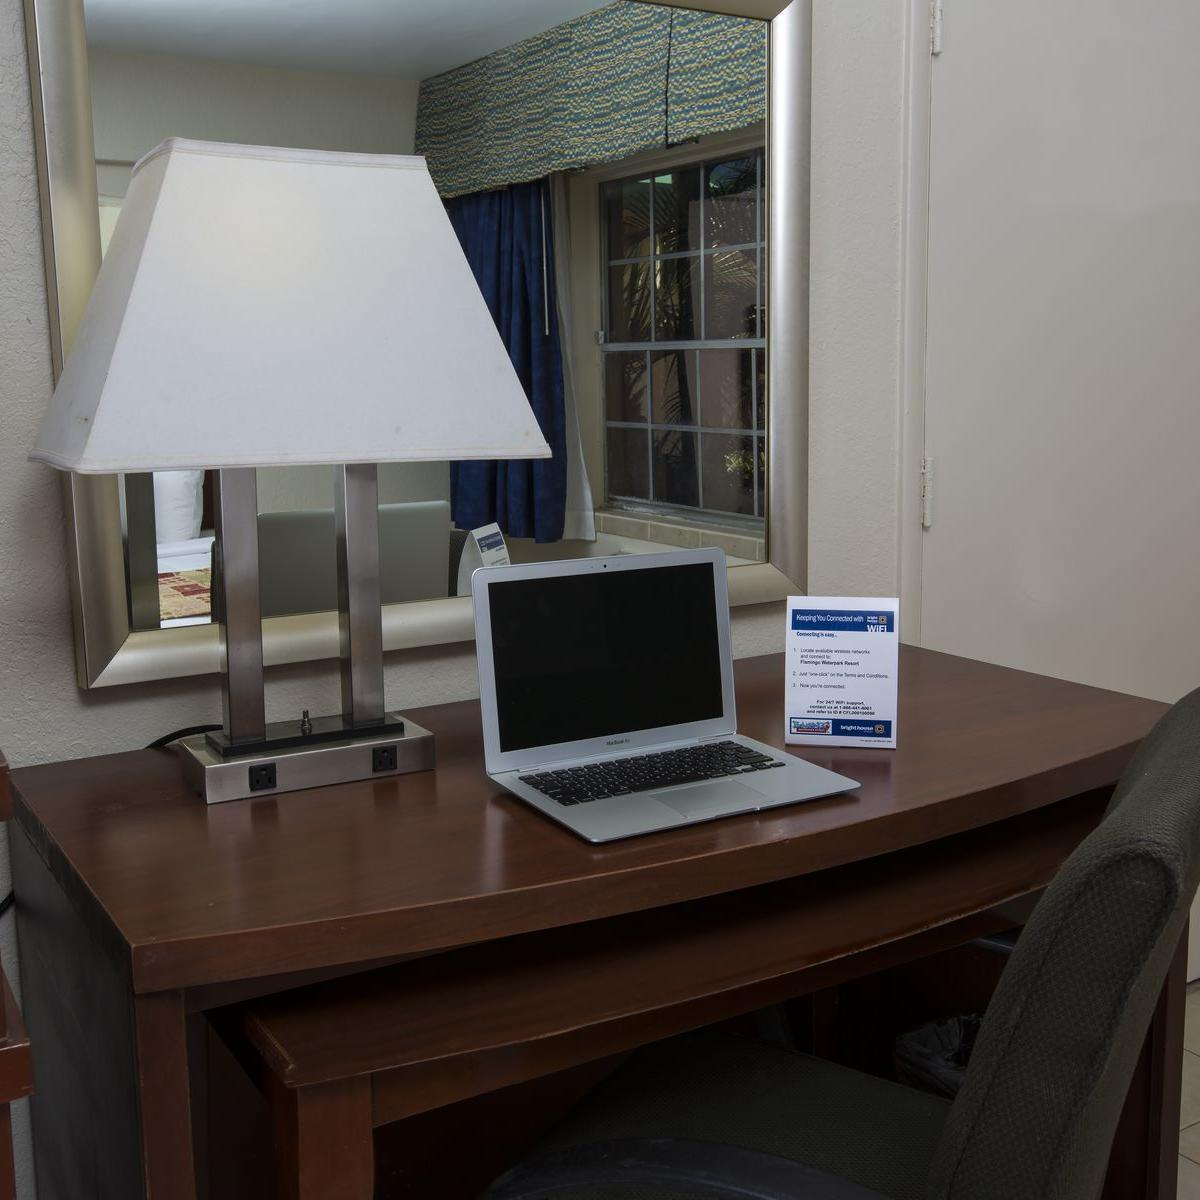 Room desk with WiFi Information Card